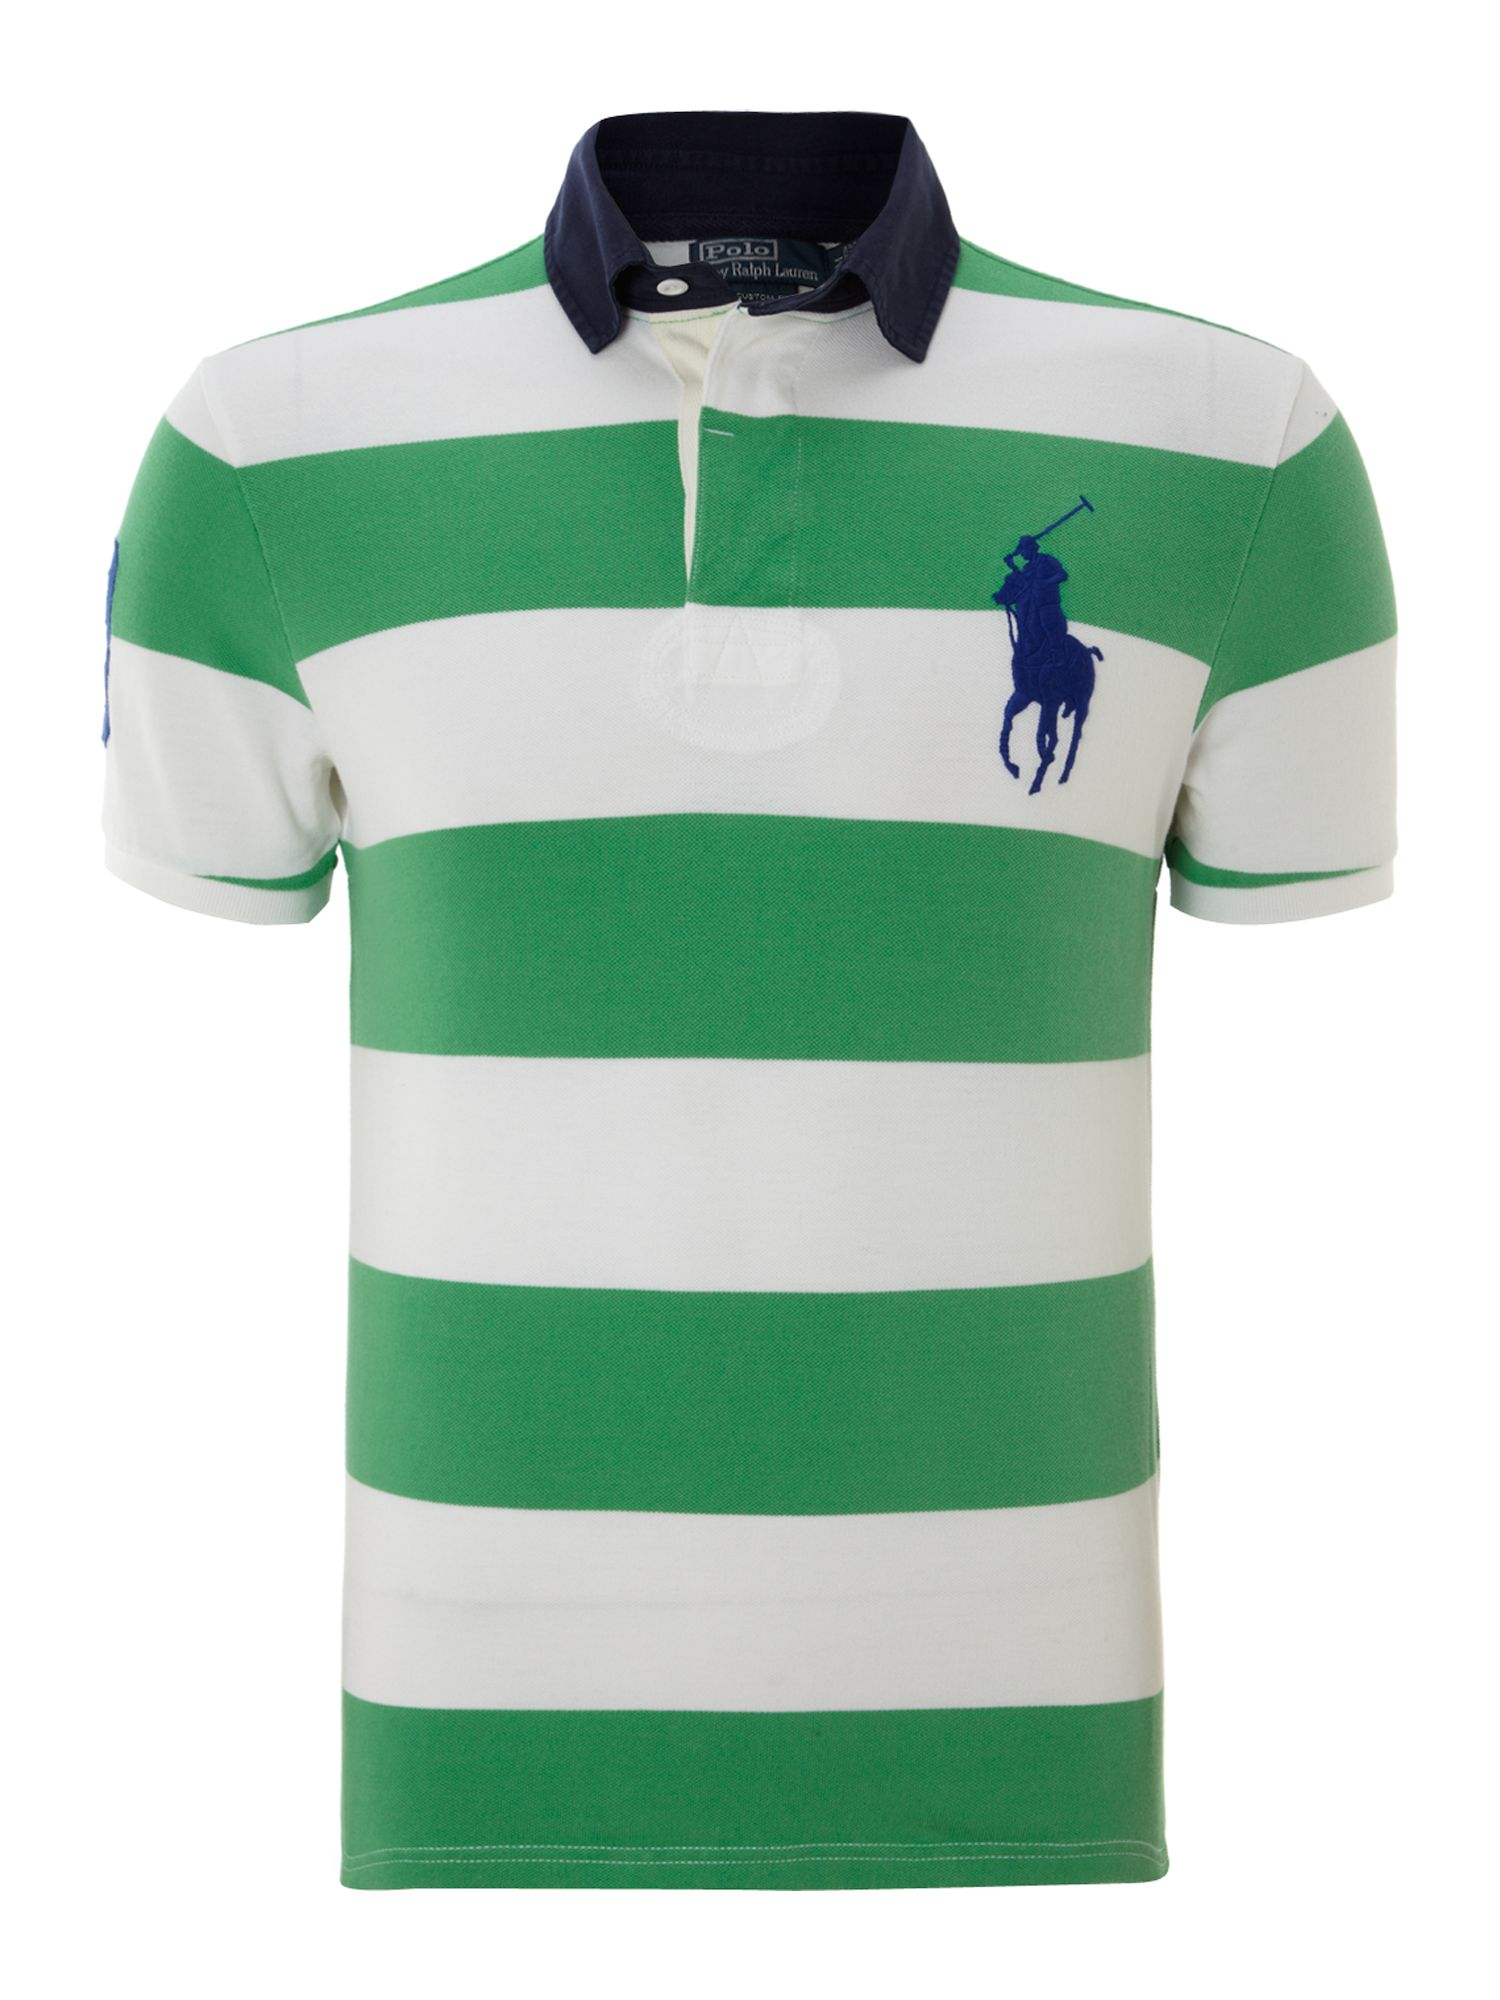 Polo ralph lauren Contrast Collar Block Striped Polo Shirt in ...